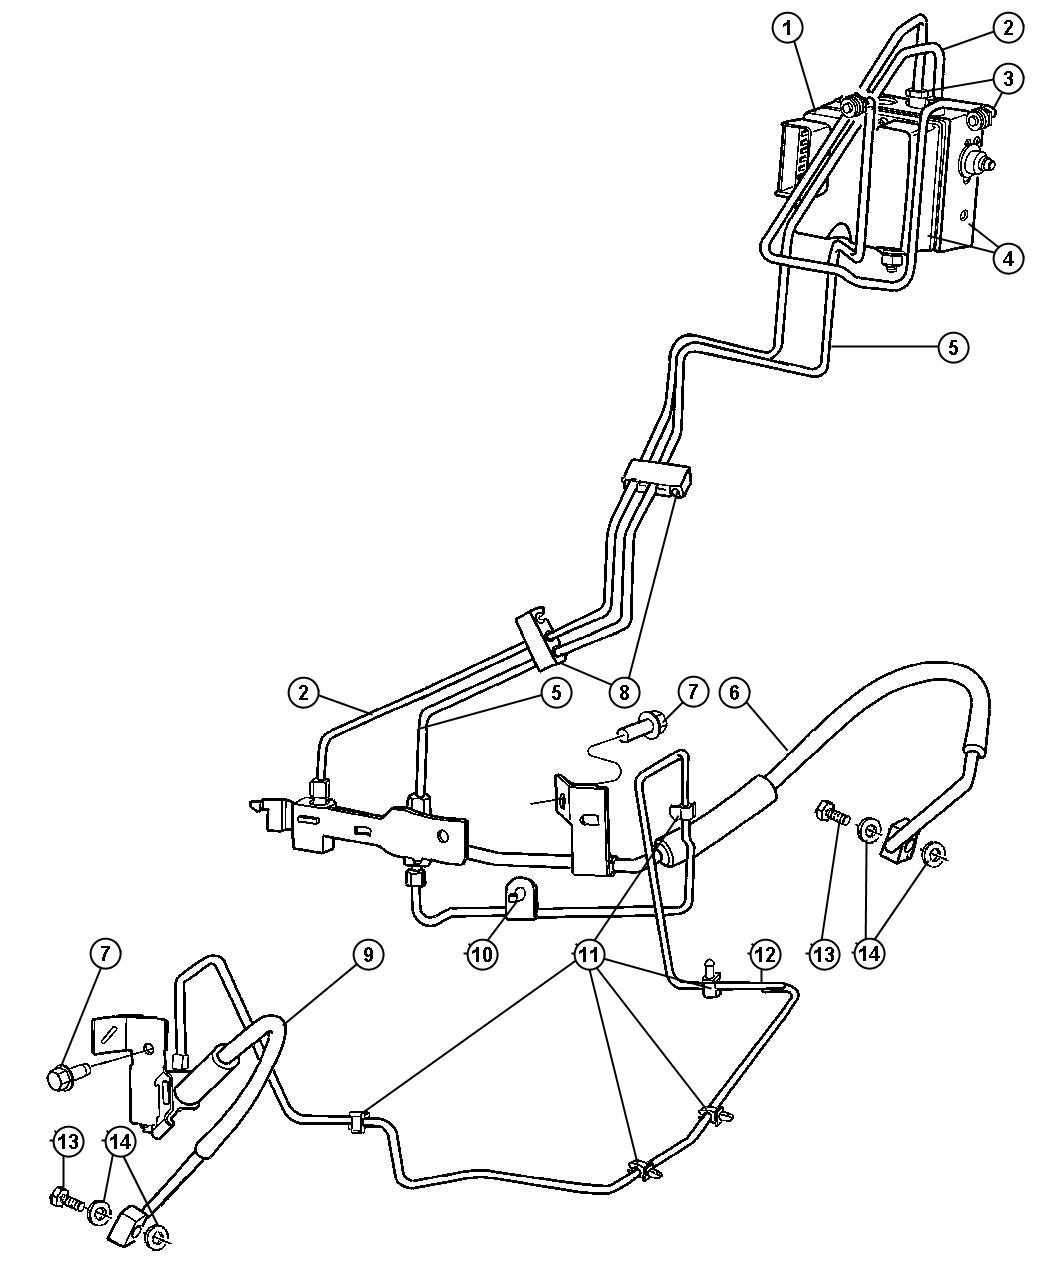 Idler Arm Bushing Replacement likewise Chevelle Suspension Diagram moreover 72 Chevy Lowering Kit moreover autopartslib in addition  on 1965 chevy c10 front suspension kits